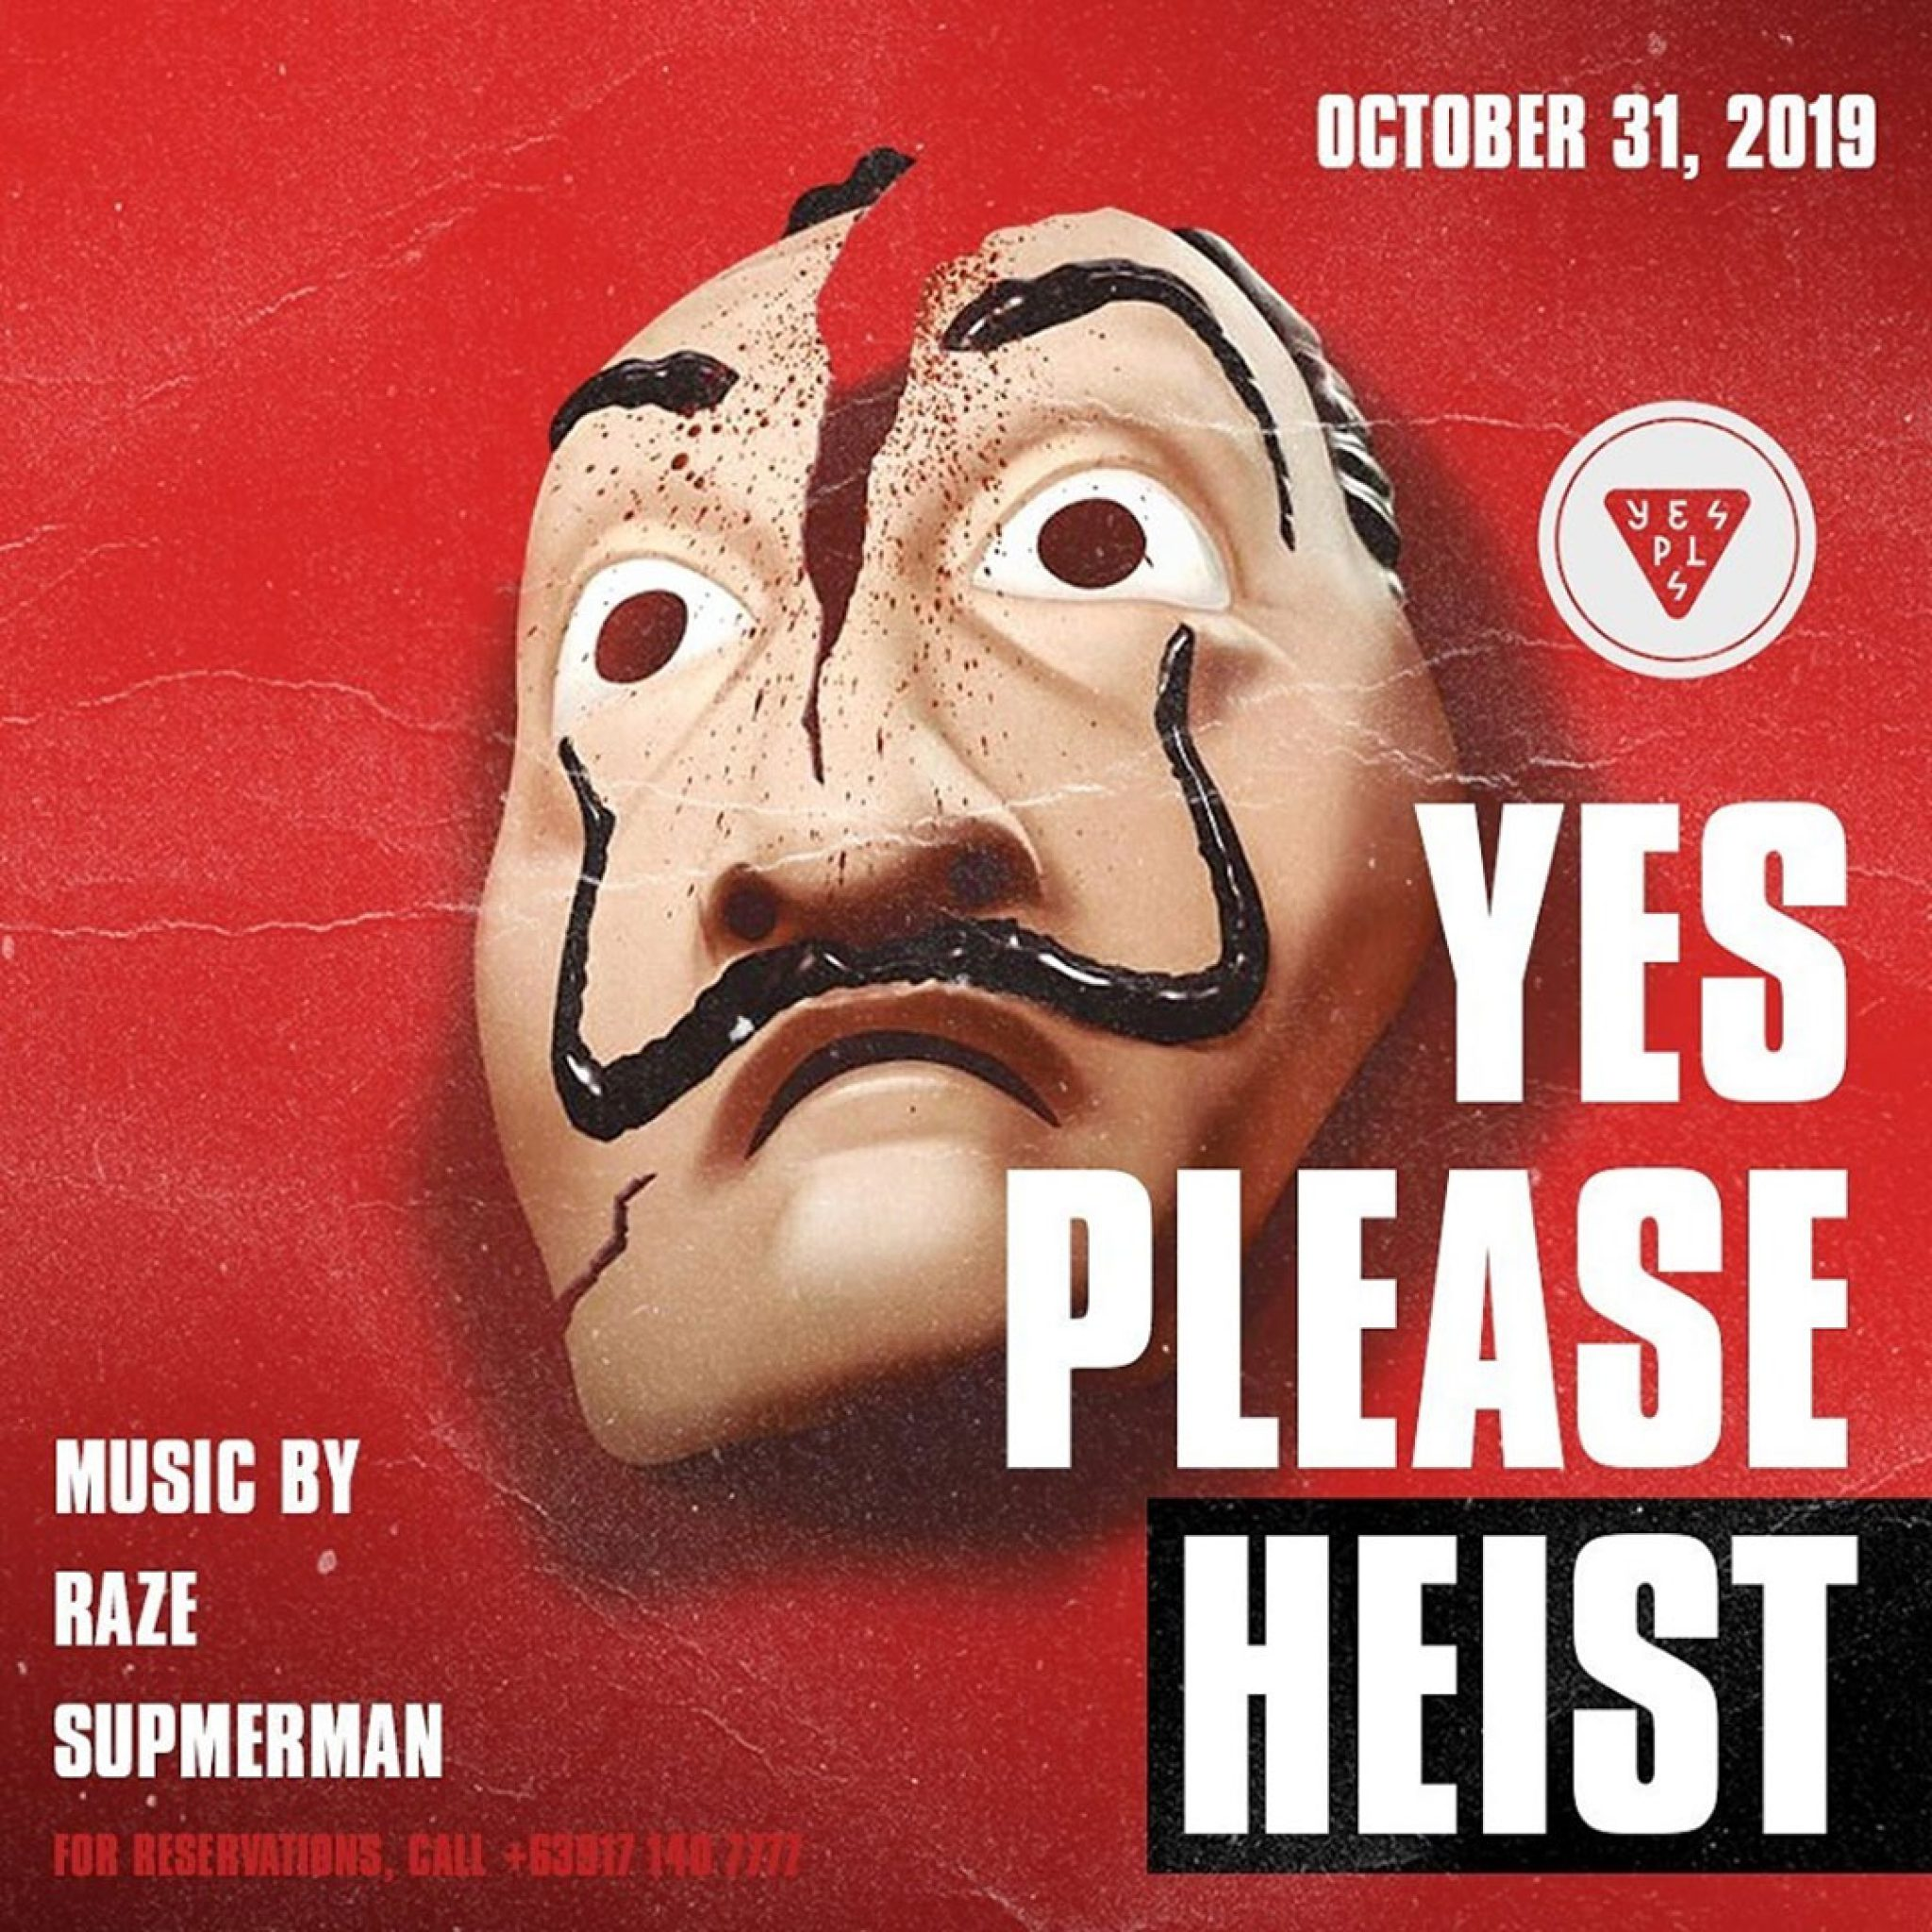 Yes Please Heist: A Halloween Bash